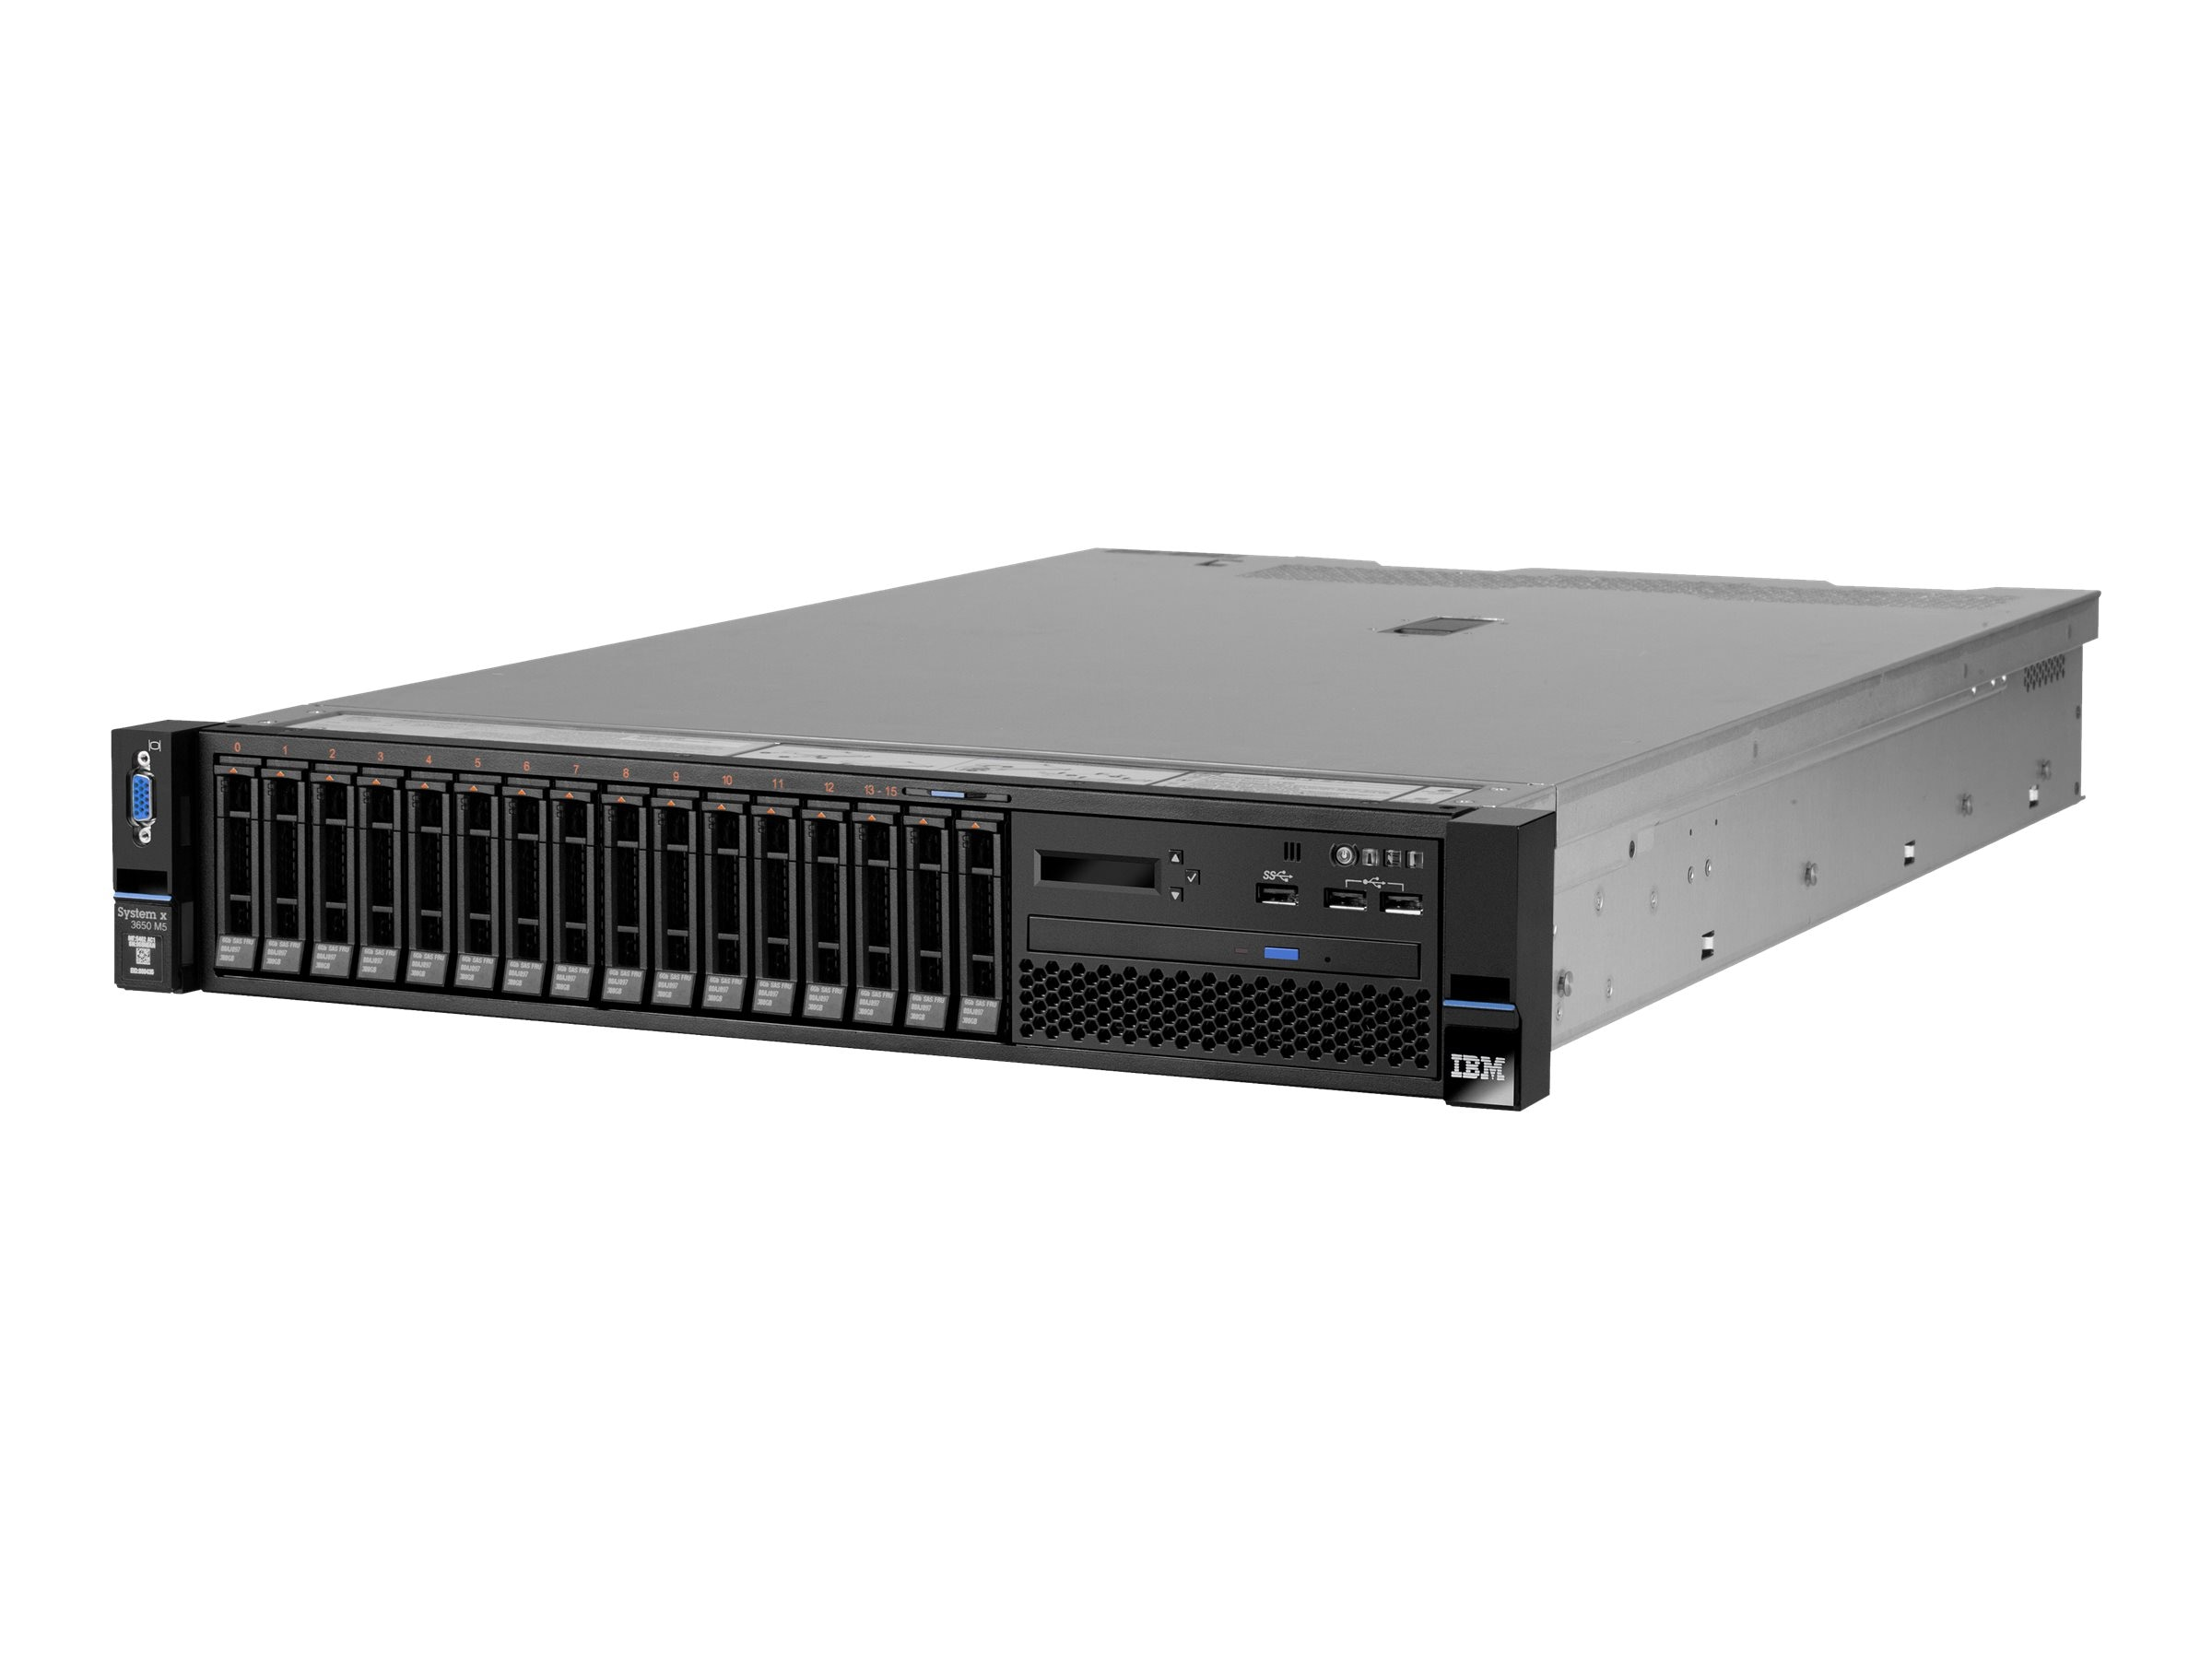 IBM Express System x3650 M5 Intel 2.3GHz Xeon, 5462EDU